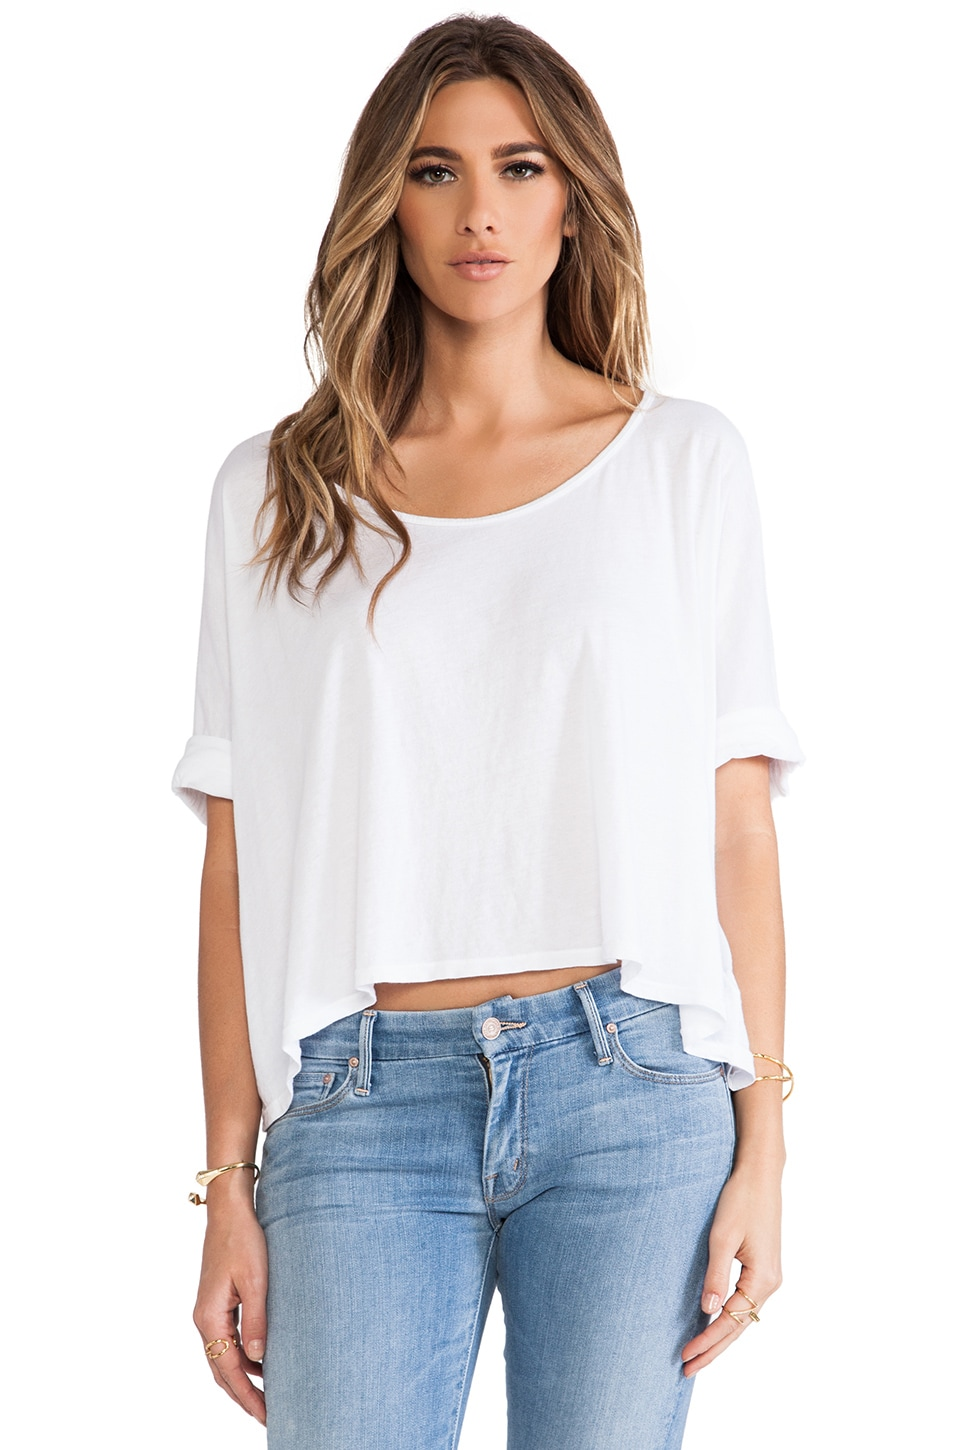 291 Boxy Cropped Tee in White